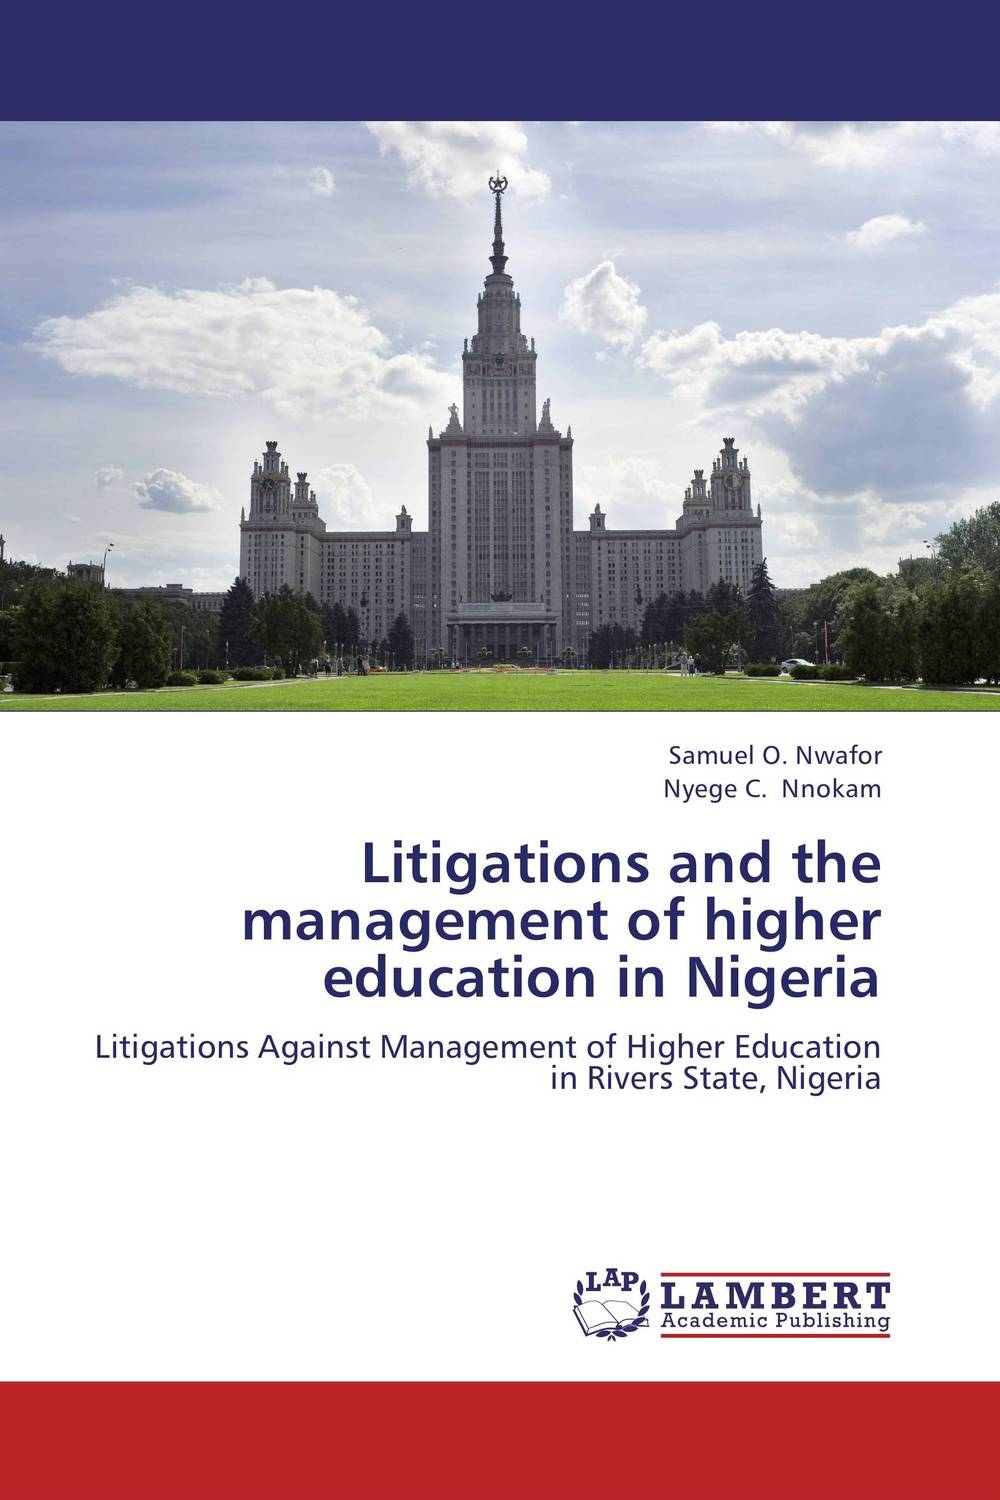 купить Litigations and the management of higher education in Nigeria по цене 6426 рублей